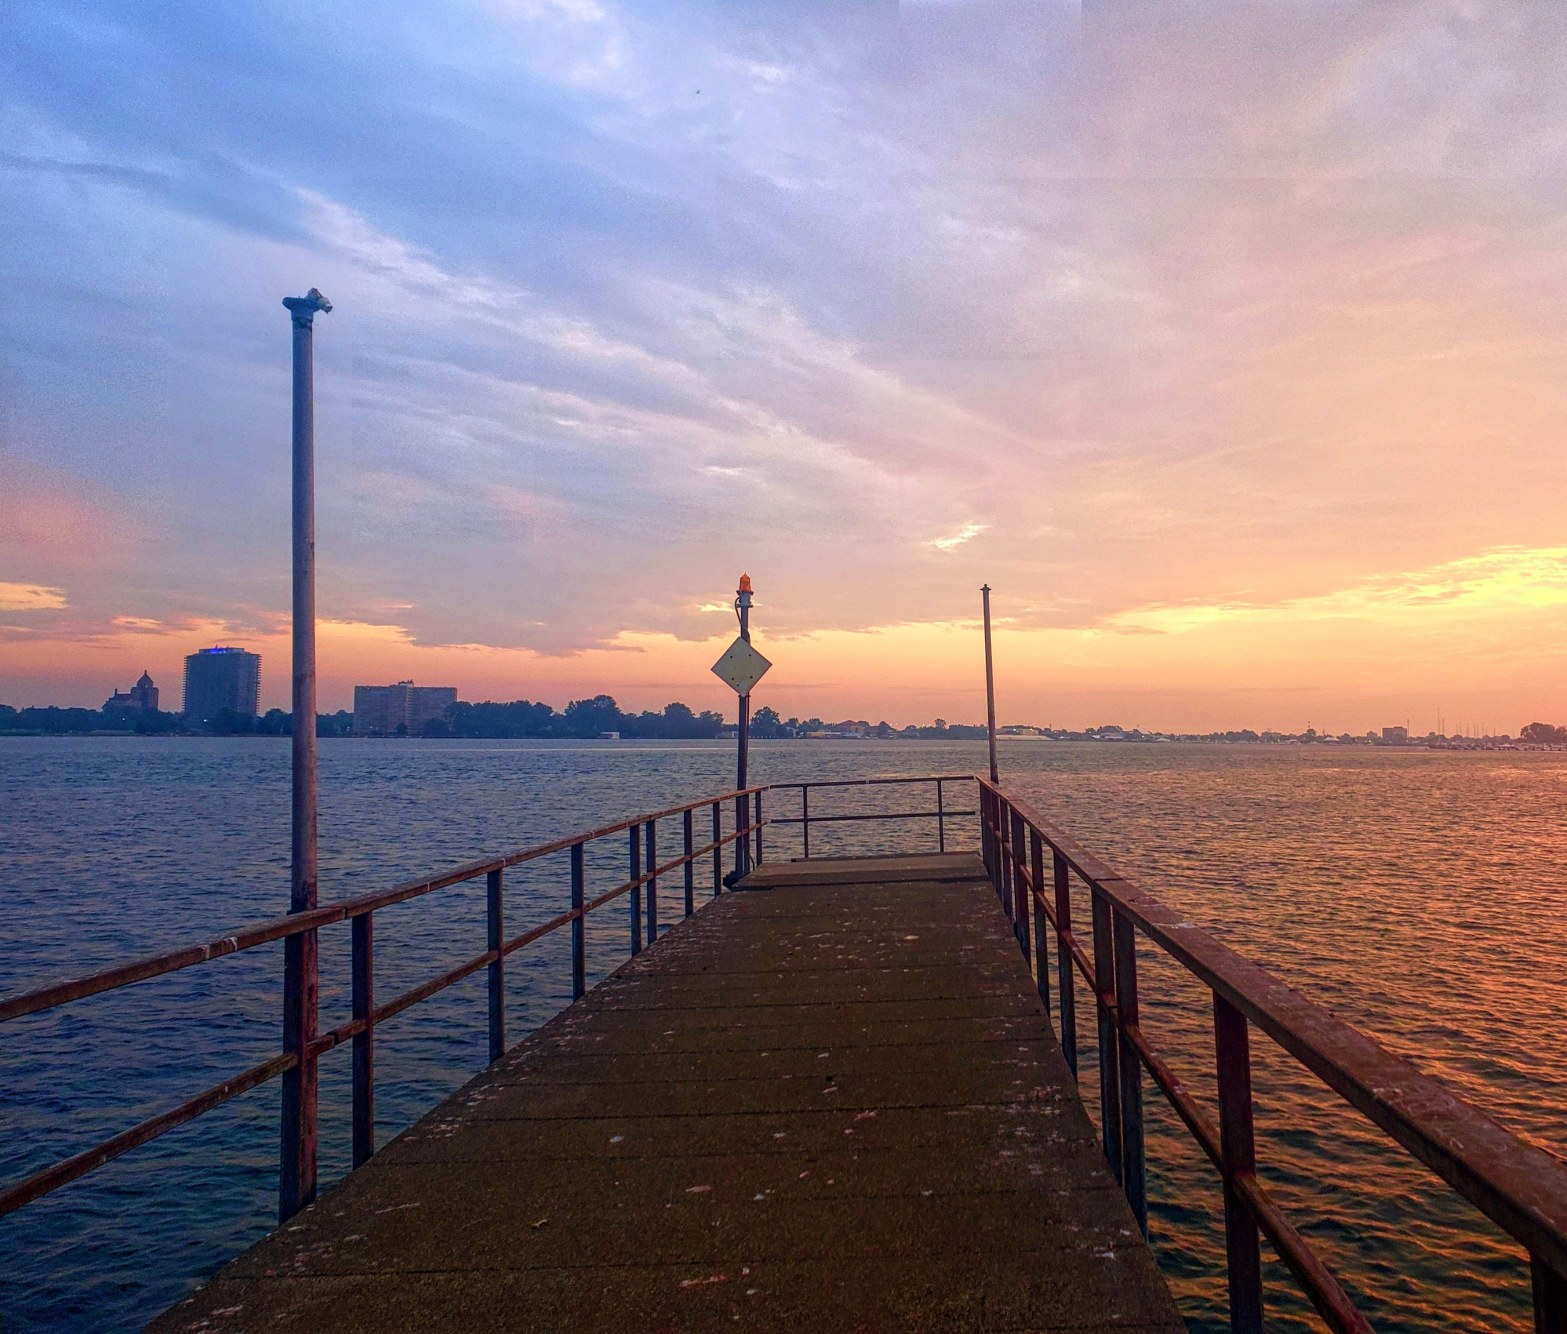 Sunrise on the North Fisherman Pier at Belle Isle State Park in Detroit Michigan